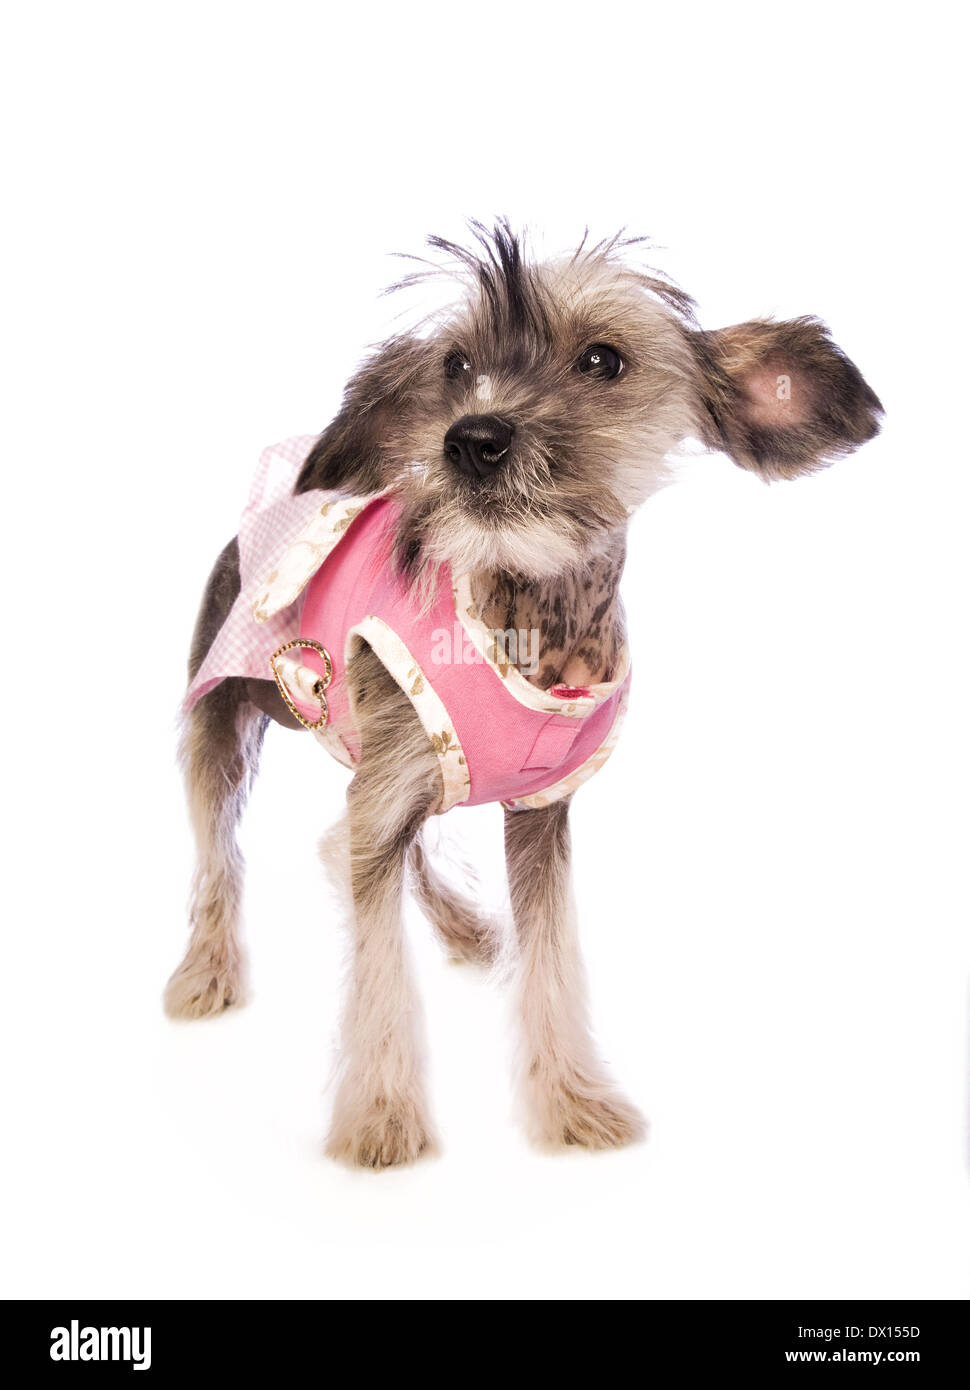 Adorable Chinese Crested hairless puppy standing wearing pink dress isolated on white background - Stock Image